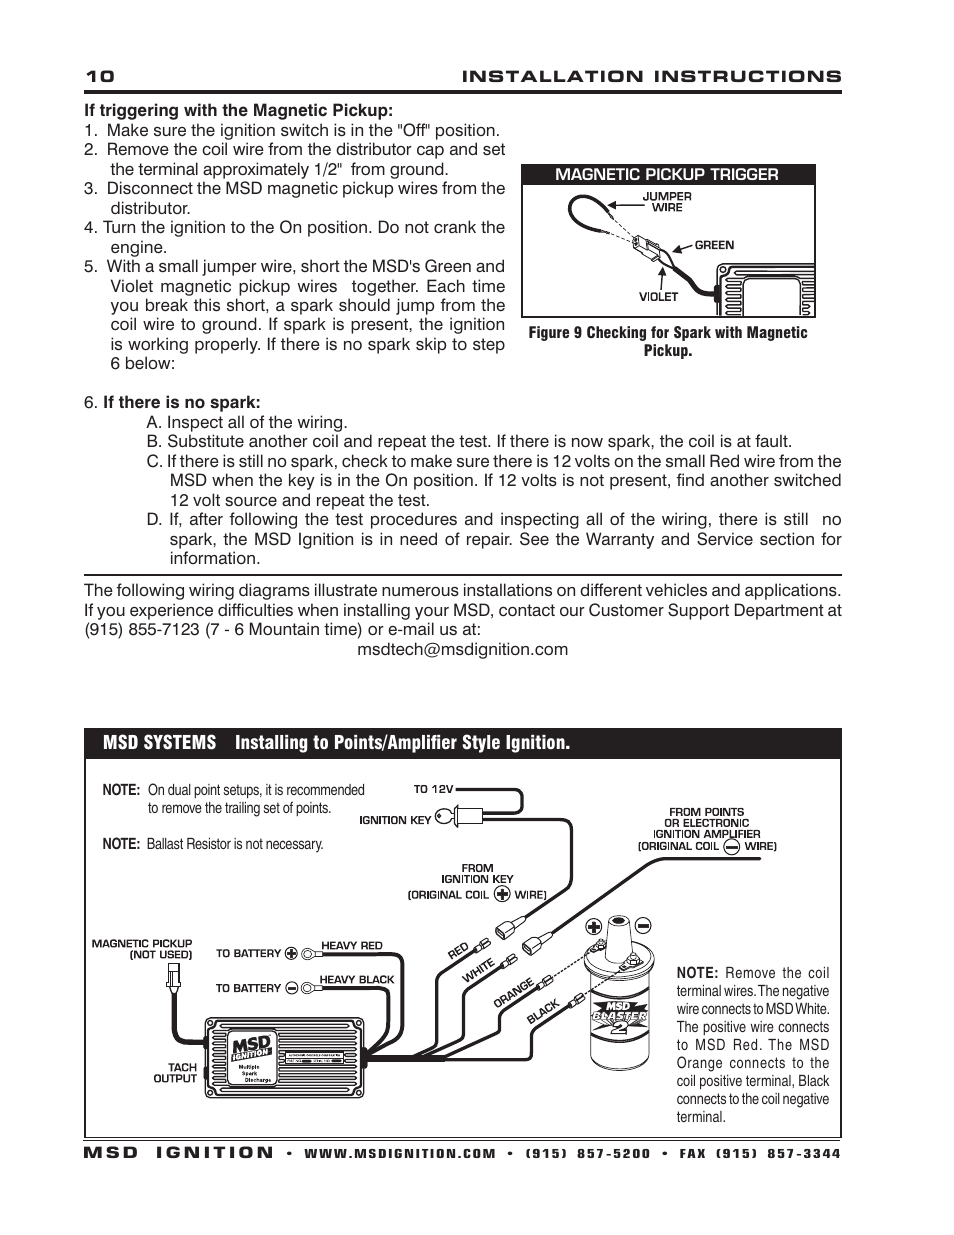 Unique Ballast Resistor Wiring Diagram Mold - Best Images for wiring ...